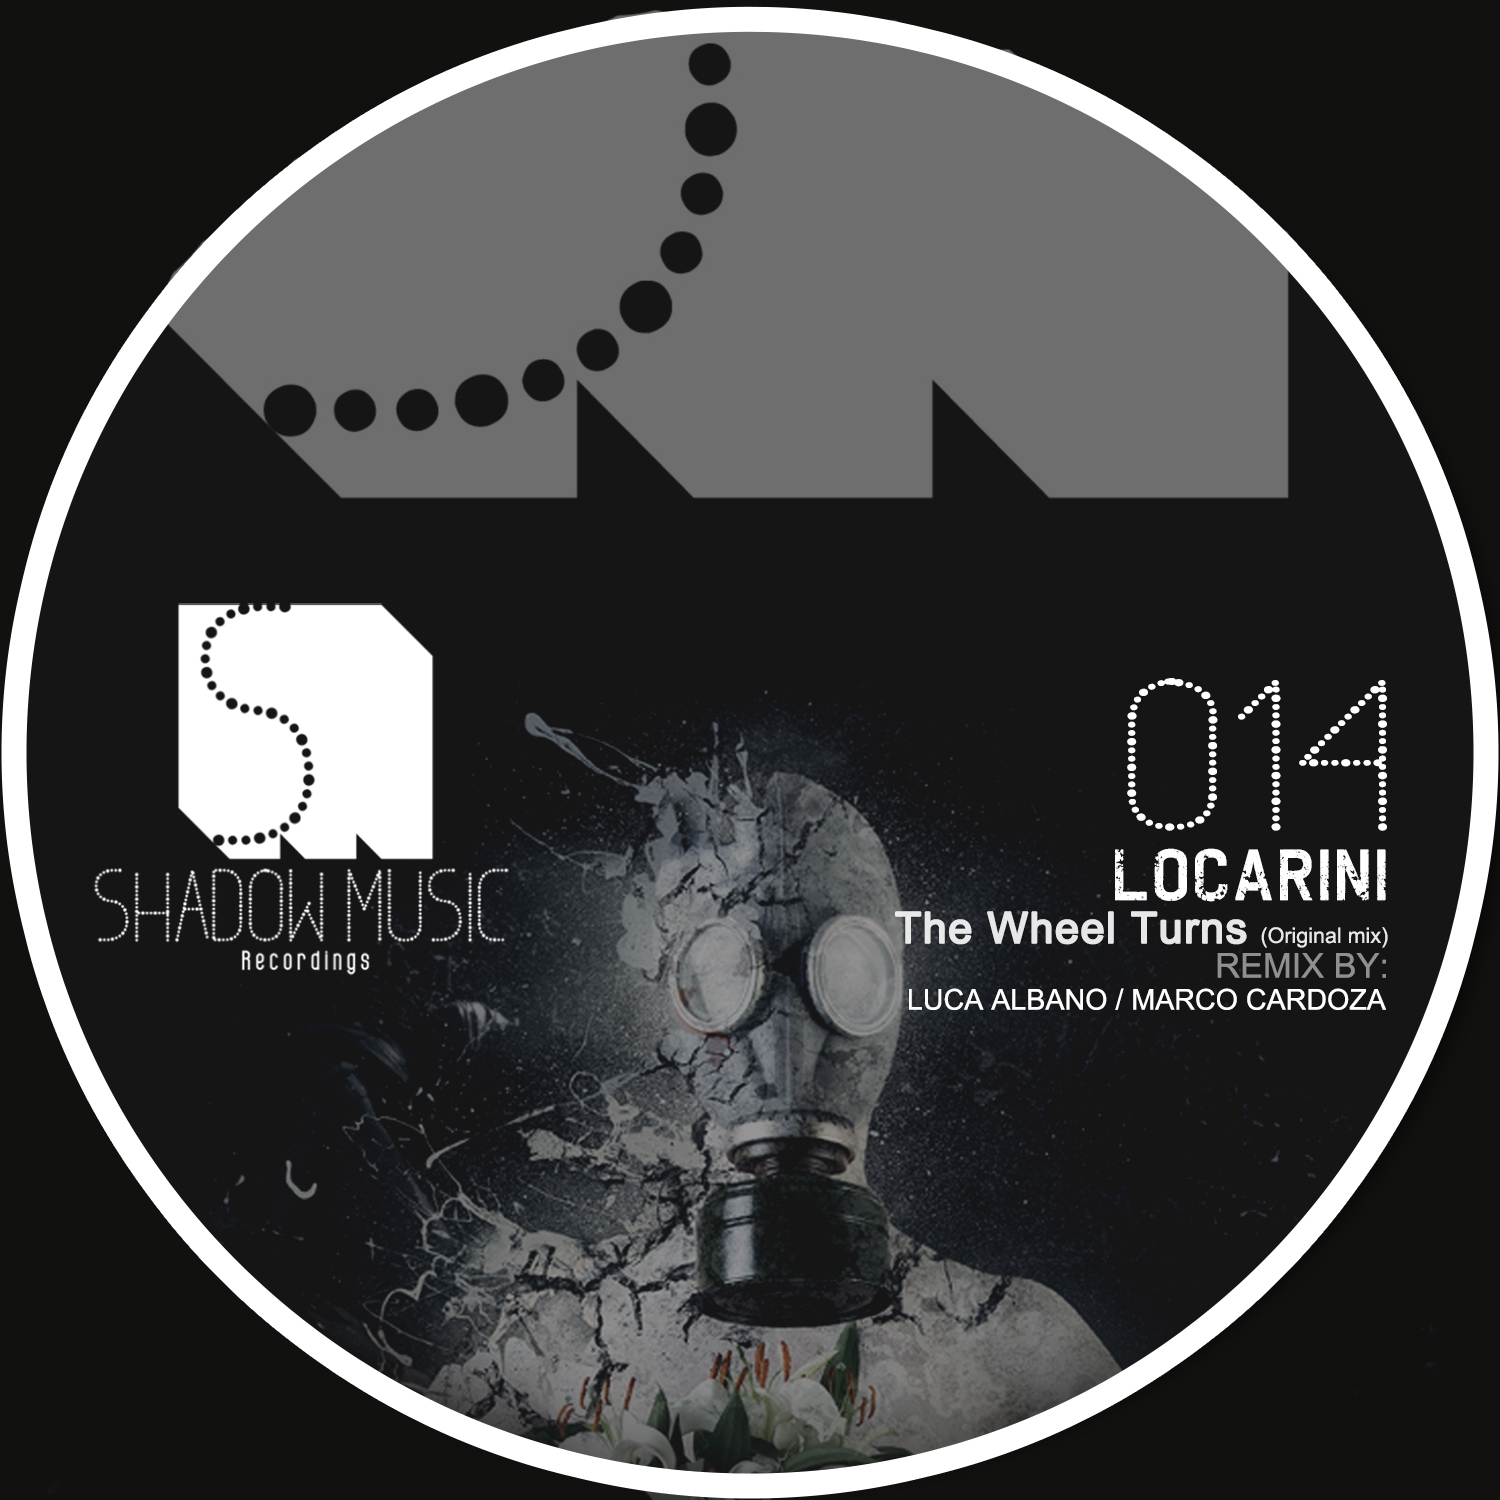 Locarini - The Wheel Turns (Marco Cardoza  Remix)